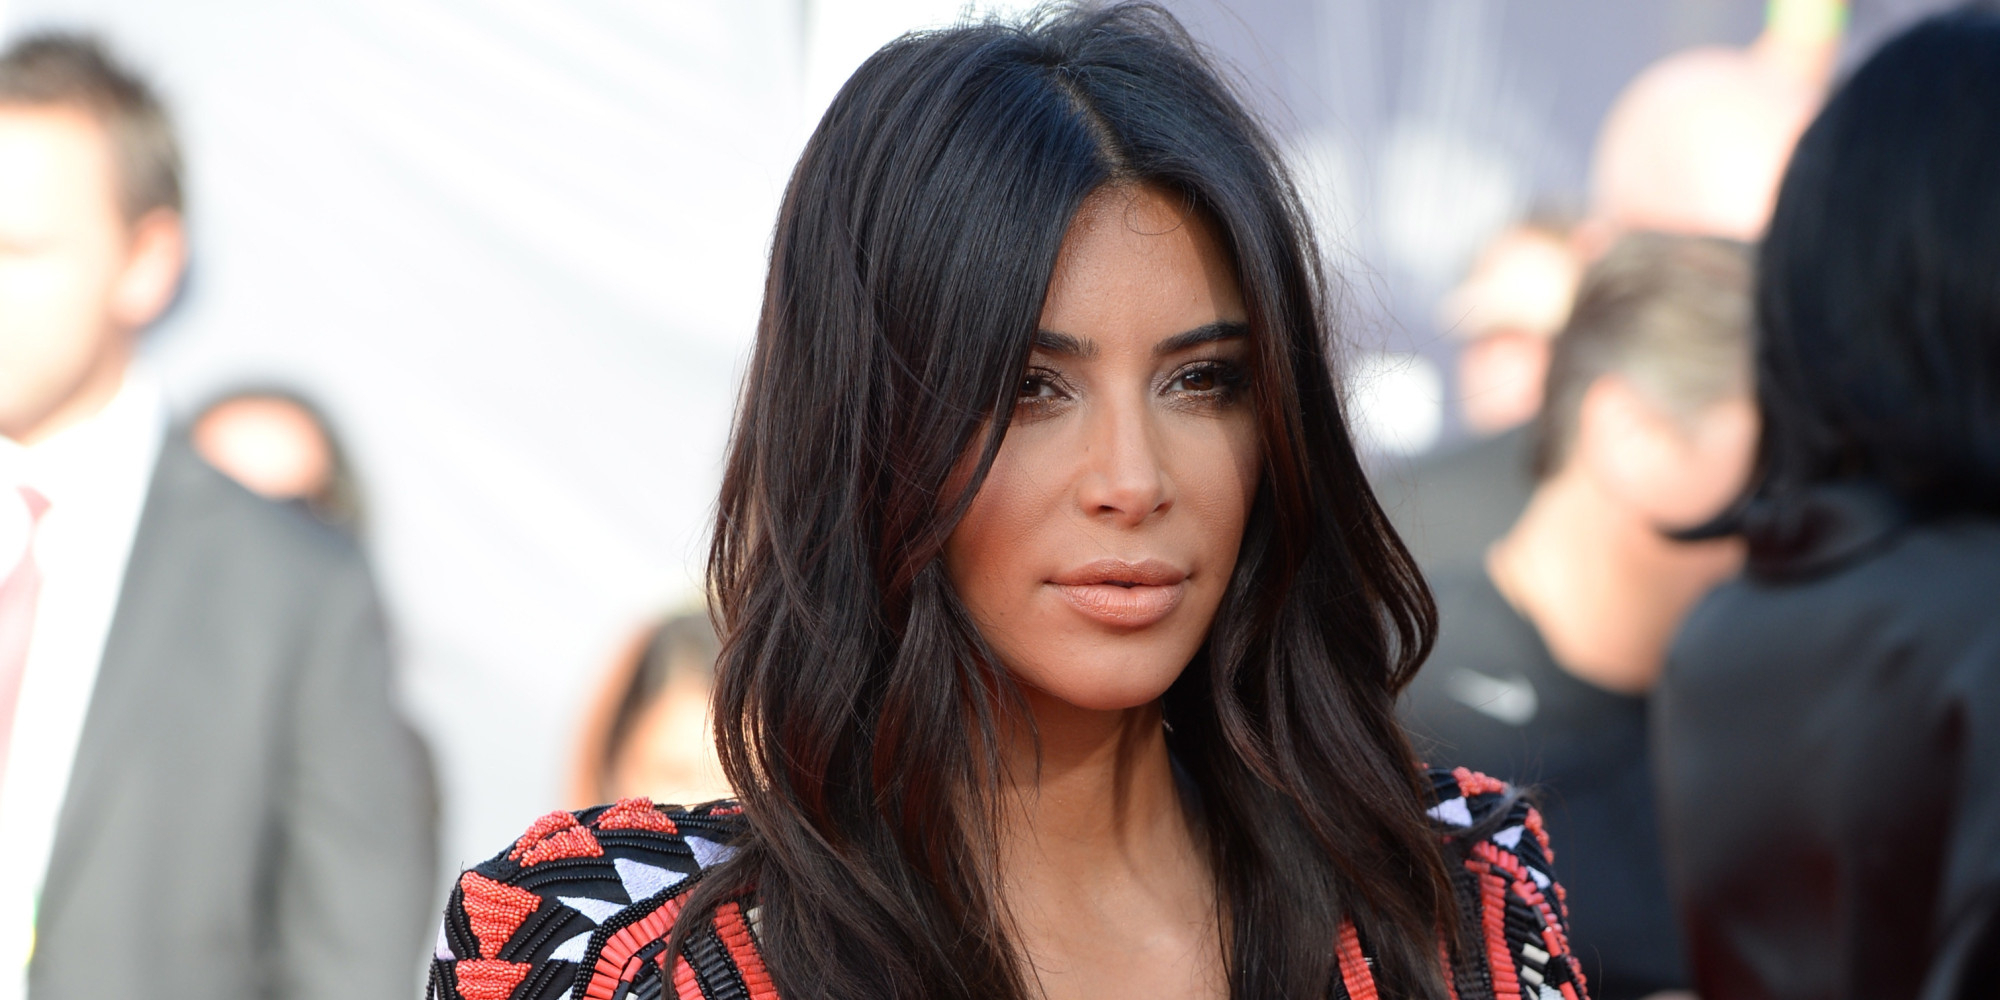 Kim Kardashian Got Her Hair Trimmed, Apparently – Kim Kardashian Pertaining To Kim Kardashian Short Hairstyles (View 11 of 25)